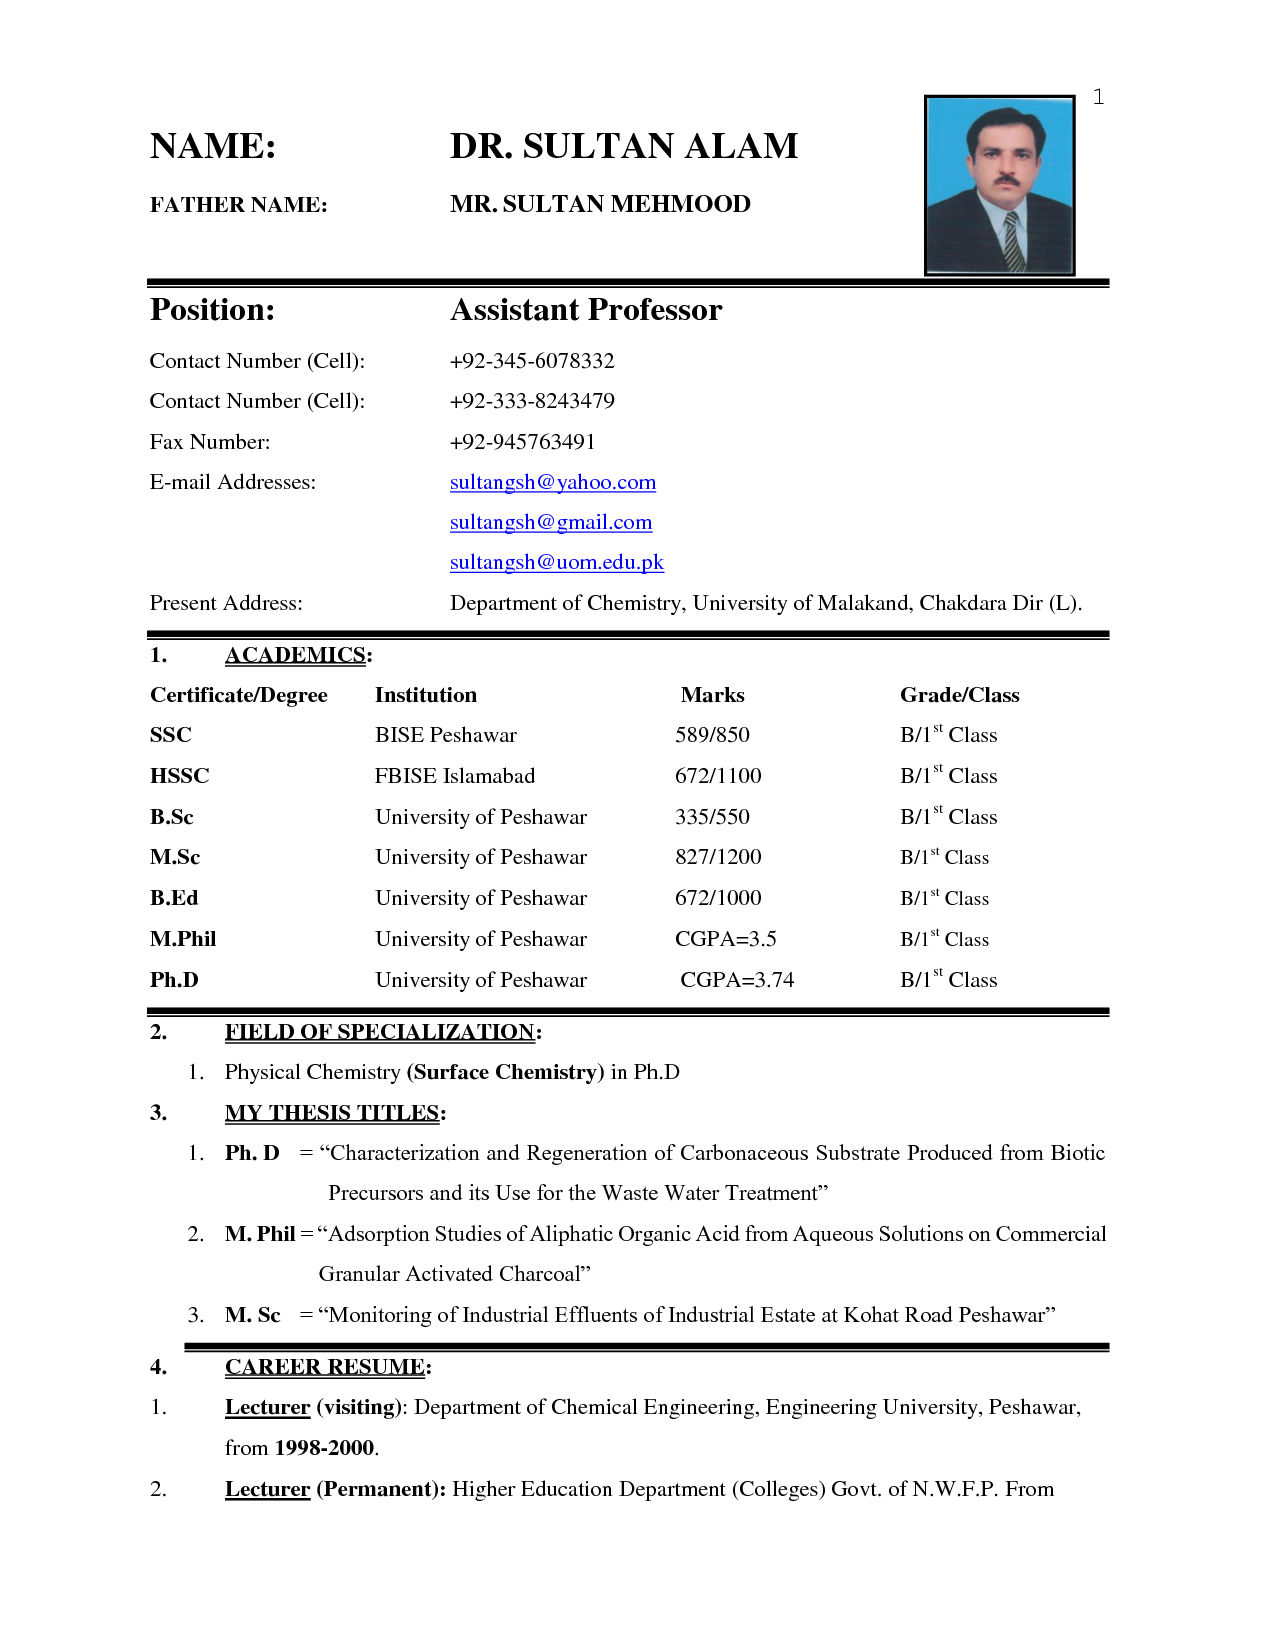 Resume Template Doc Biodata Form In Word Simple Biodata Format Doc Letterformats